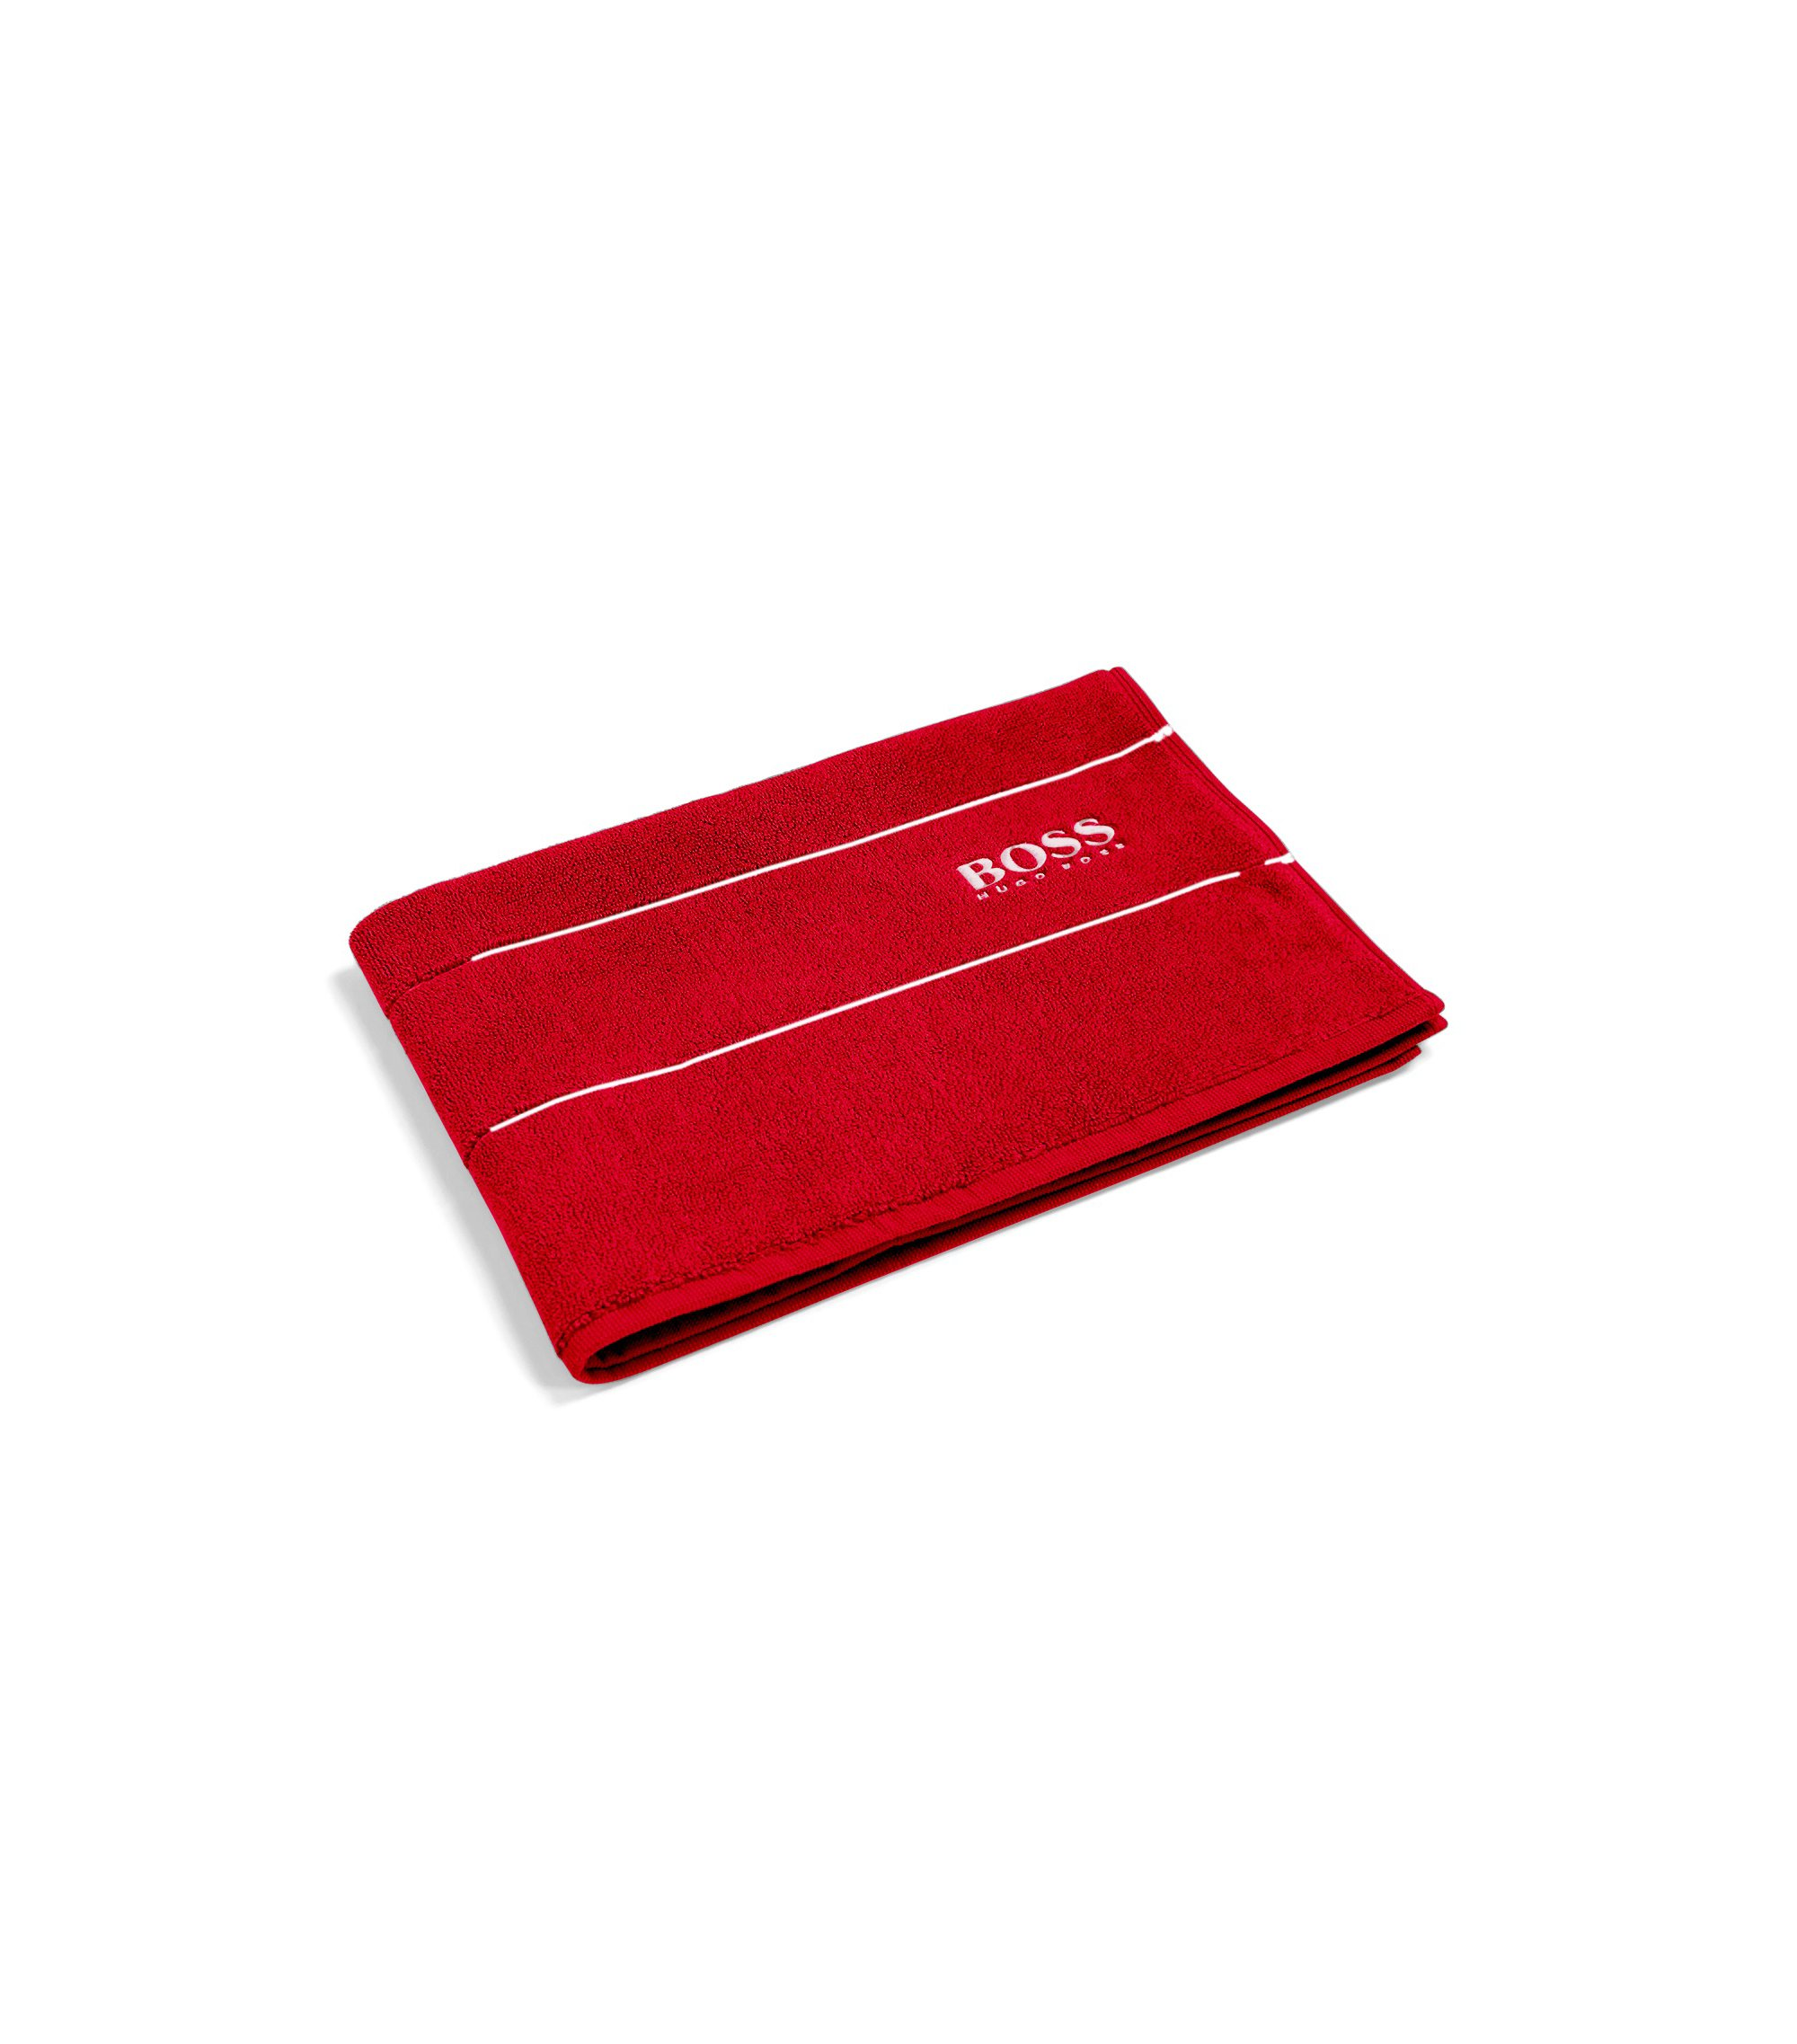 Finest Egyptian cotton bath mat with logo border, Red